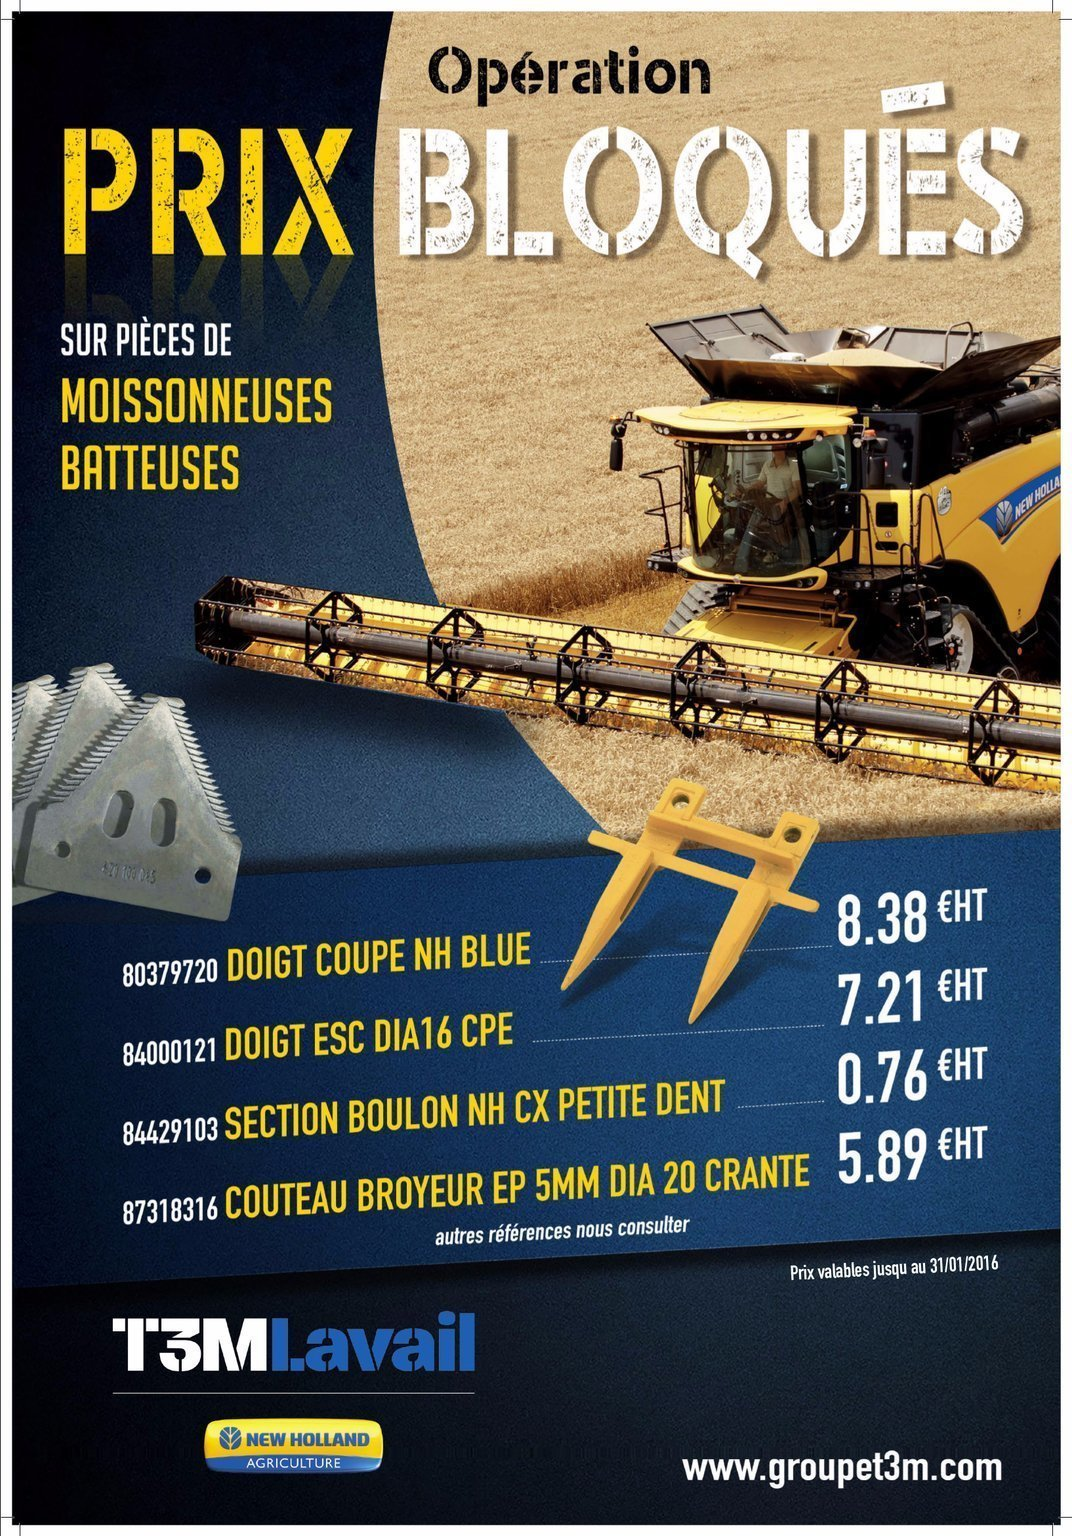 New Holland discount !!!